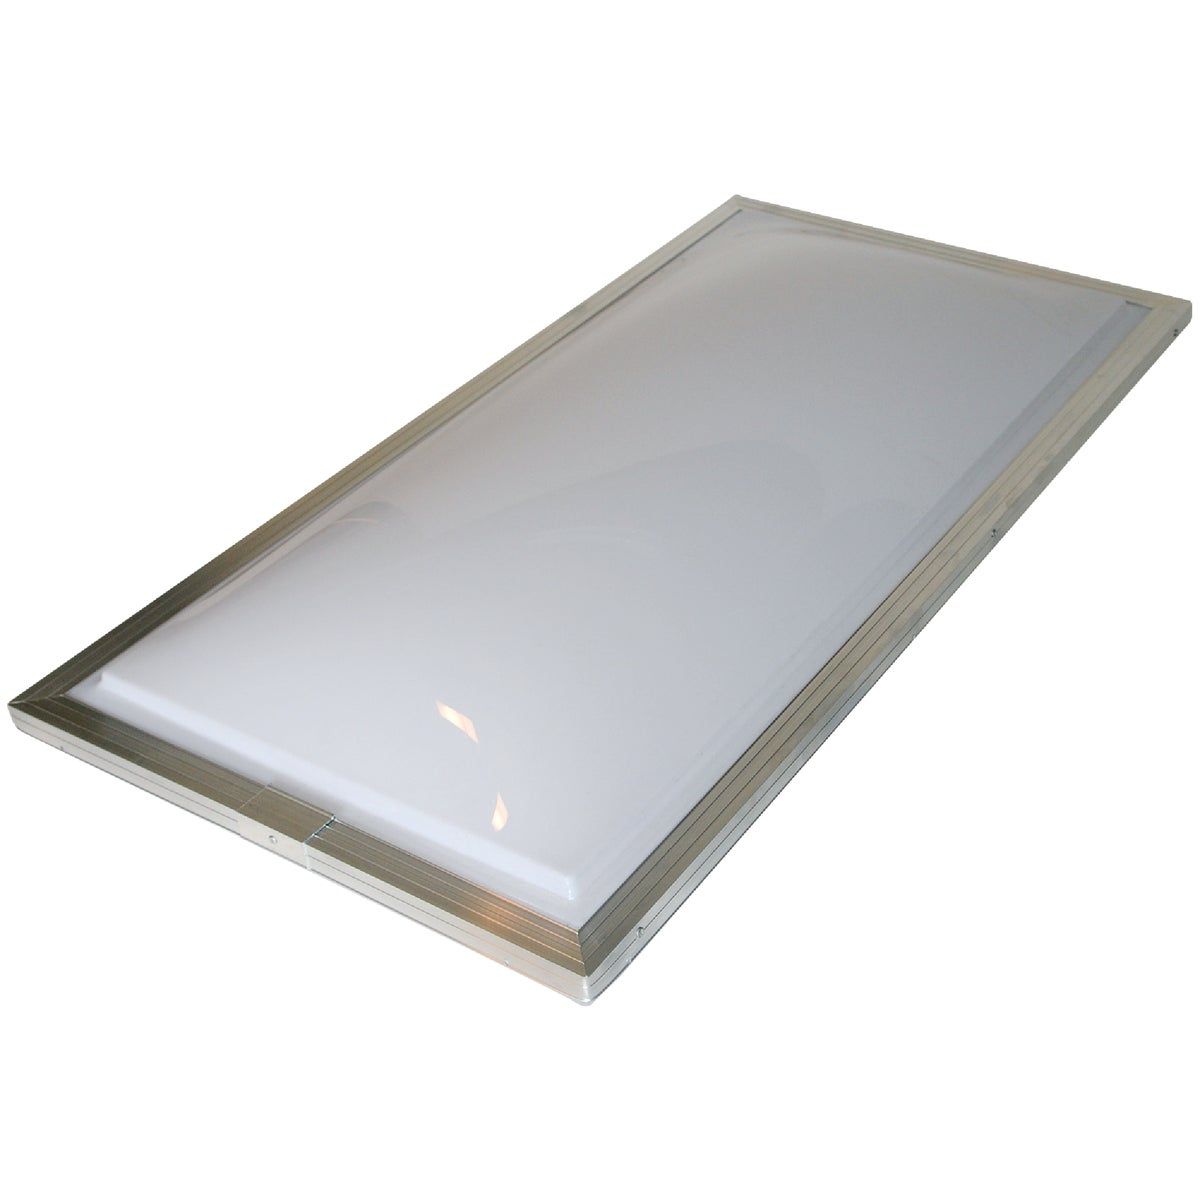 2X4 WHT DOUBLE SKYLIGHT - CMA2246WCN by Sun Tek Manuf Inc